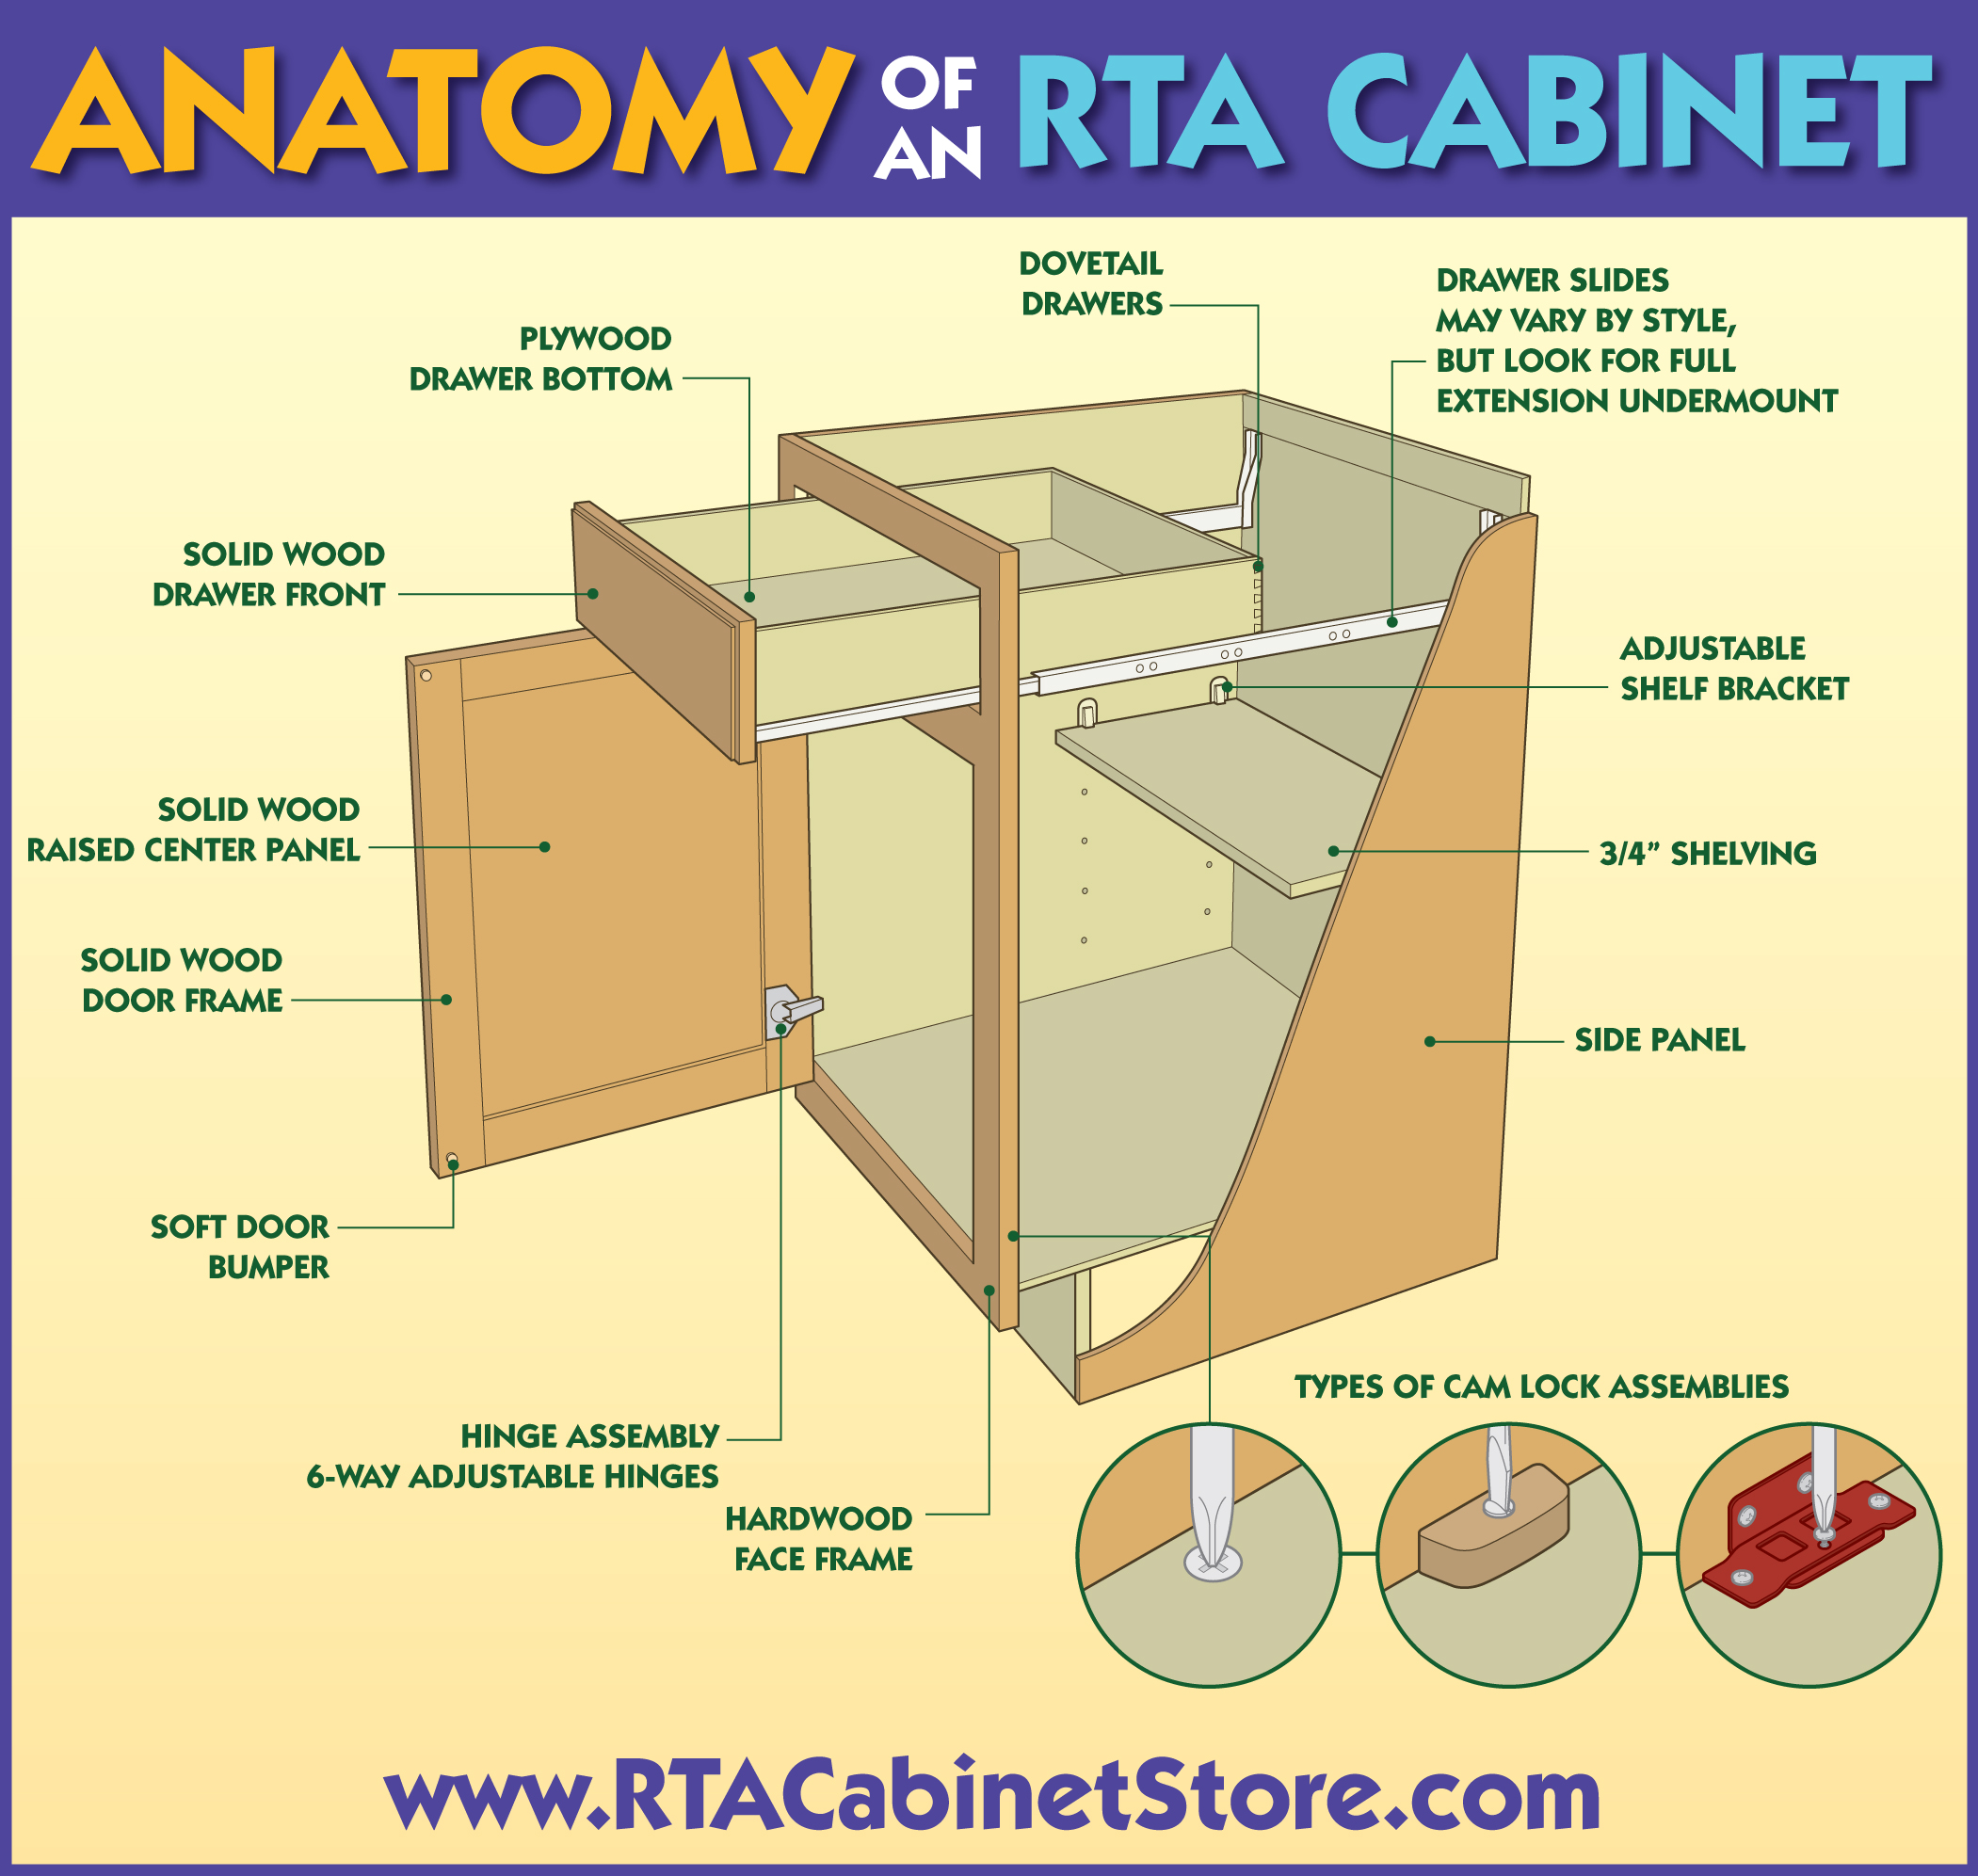 The rta cabinet store - Anatomy Of An Rta Cabinet